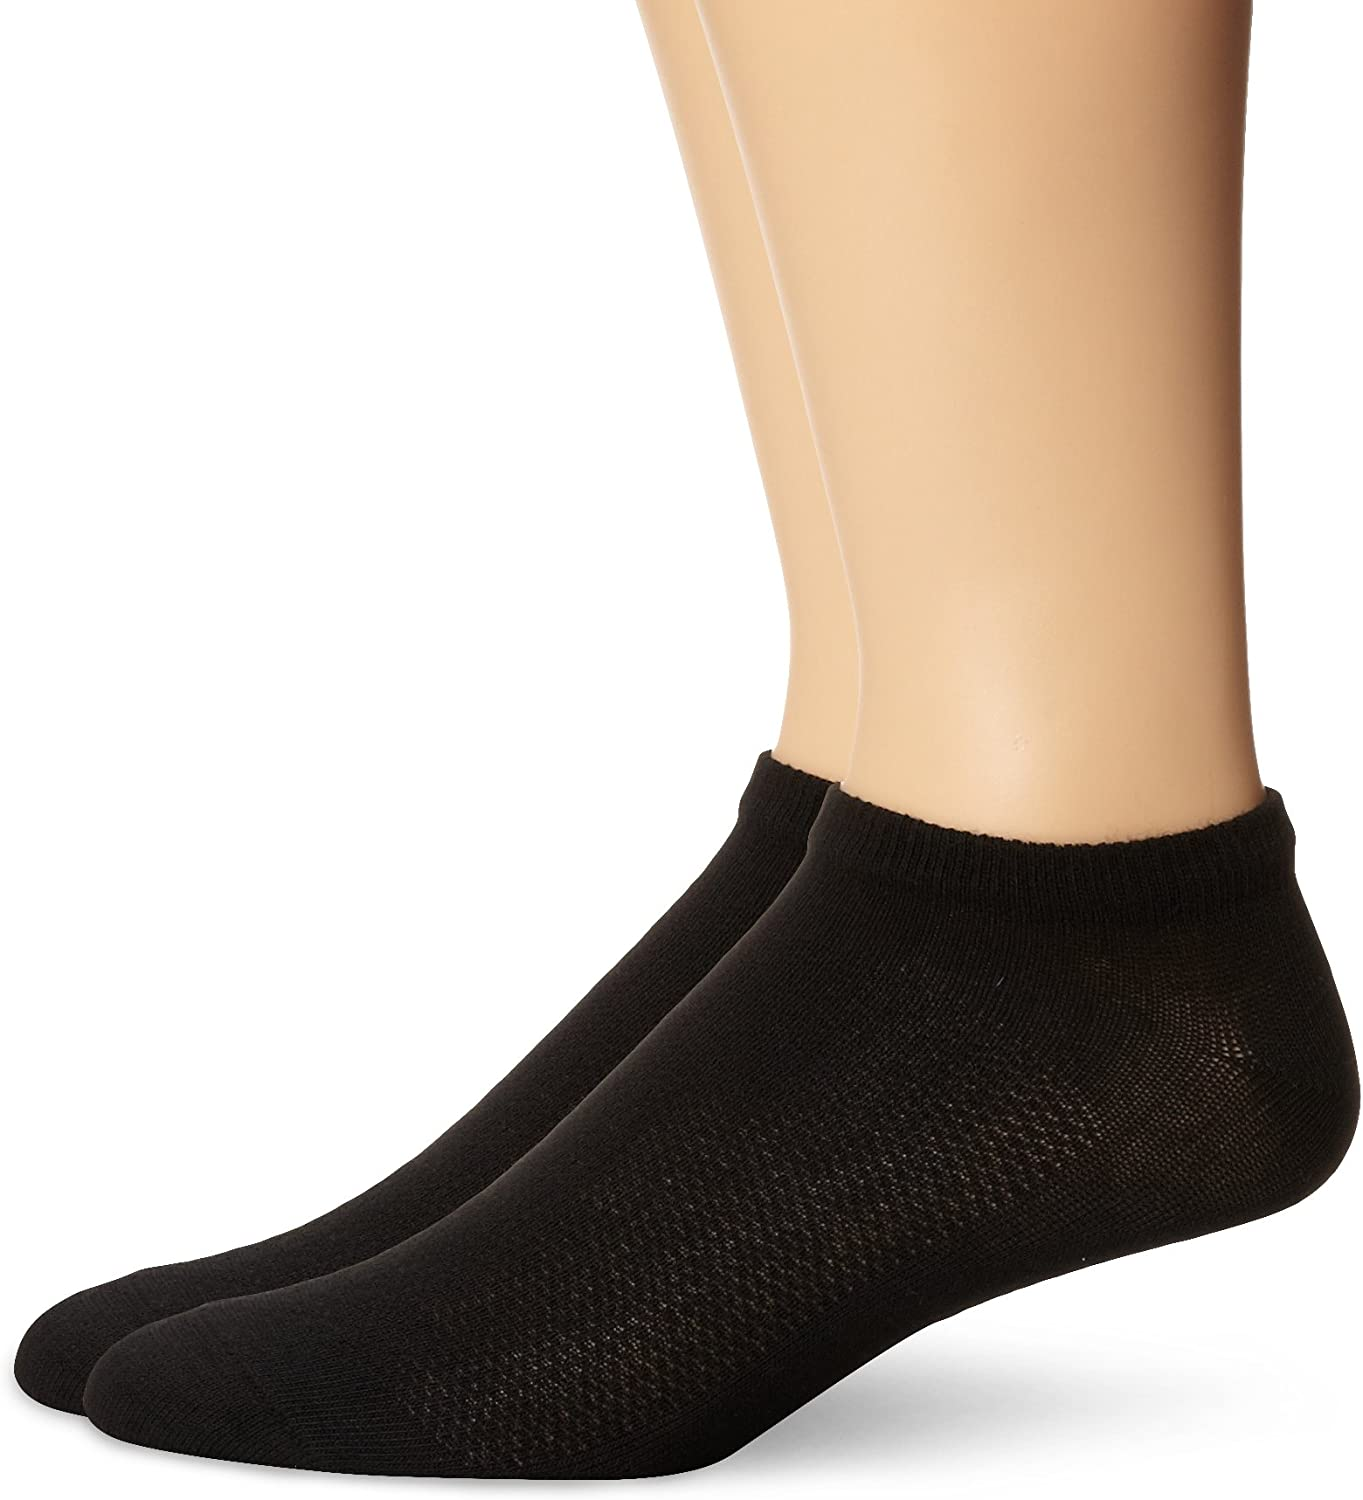 Hanes Ankle Socks 6-Pack Men/'s X-Temp Comfort Cool FreshIQ Wicking Soft Smooth